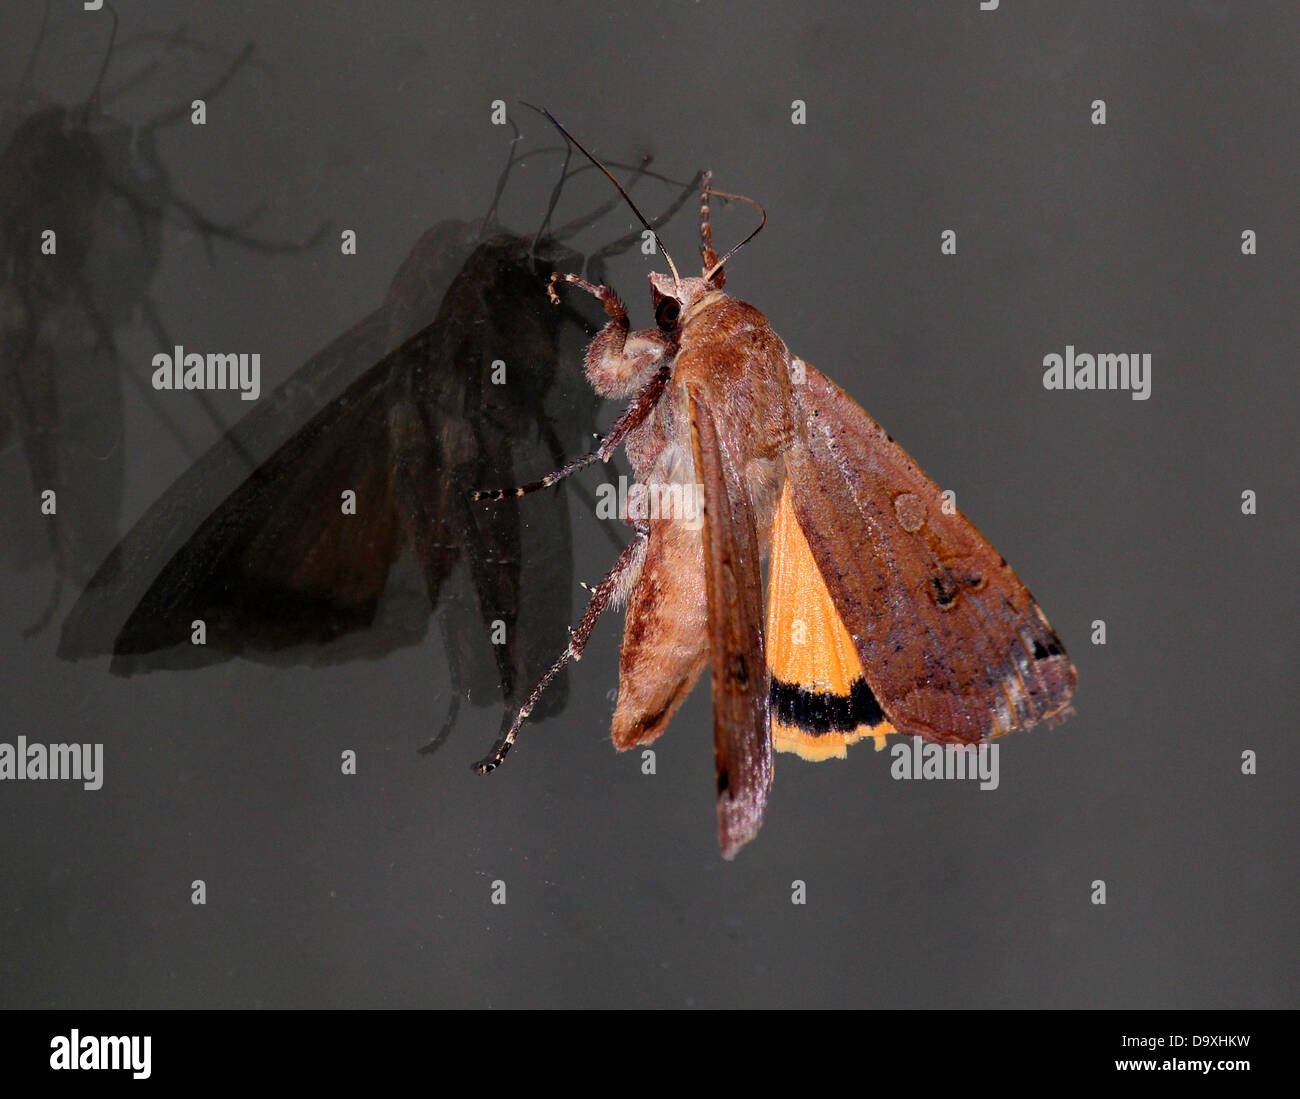 Large Yellow Underwing (Noctua pronuba) moth with wings half-opened and reflections and shadows on a window pane - Stock Image